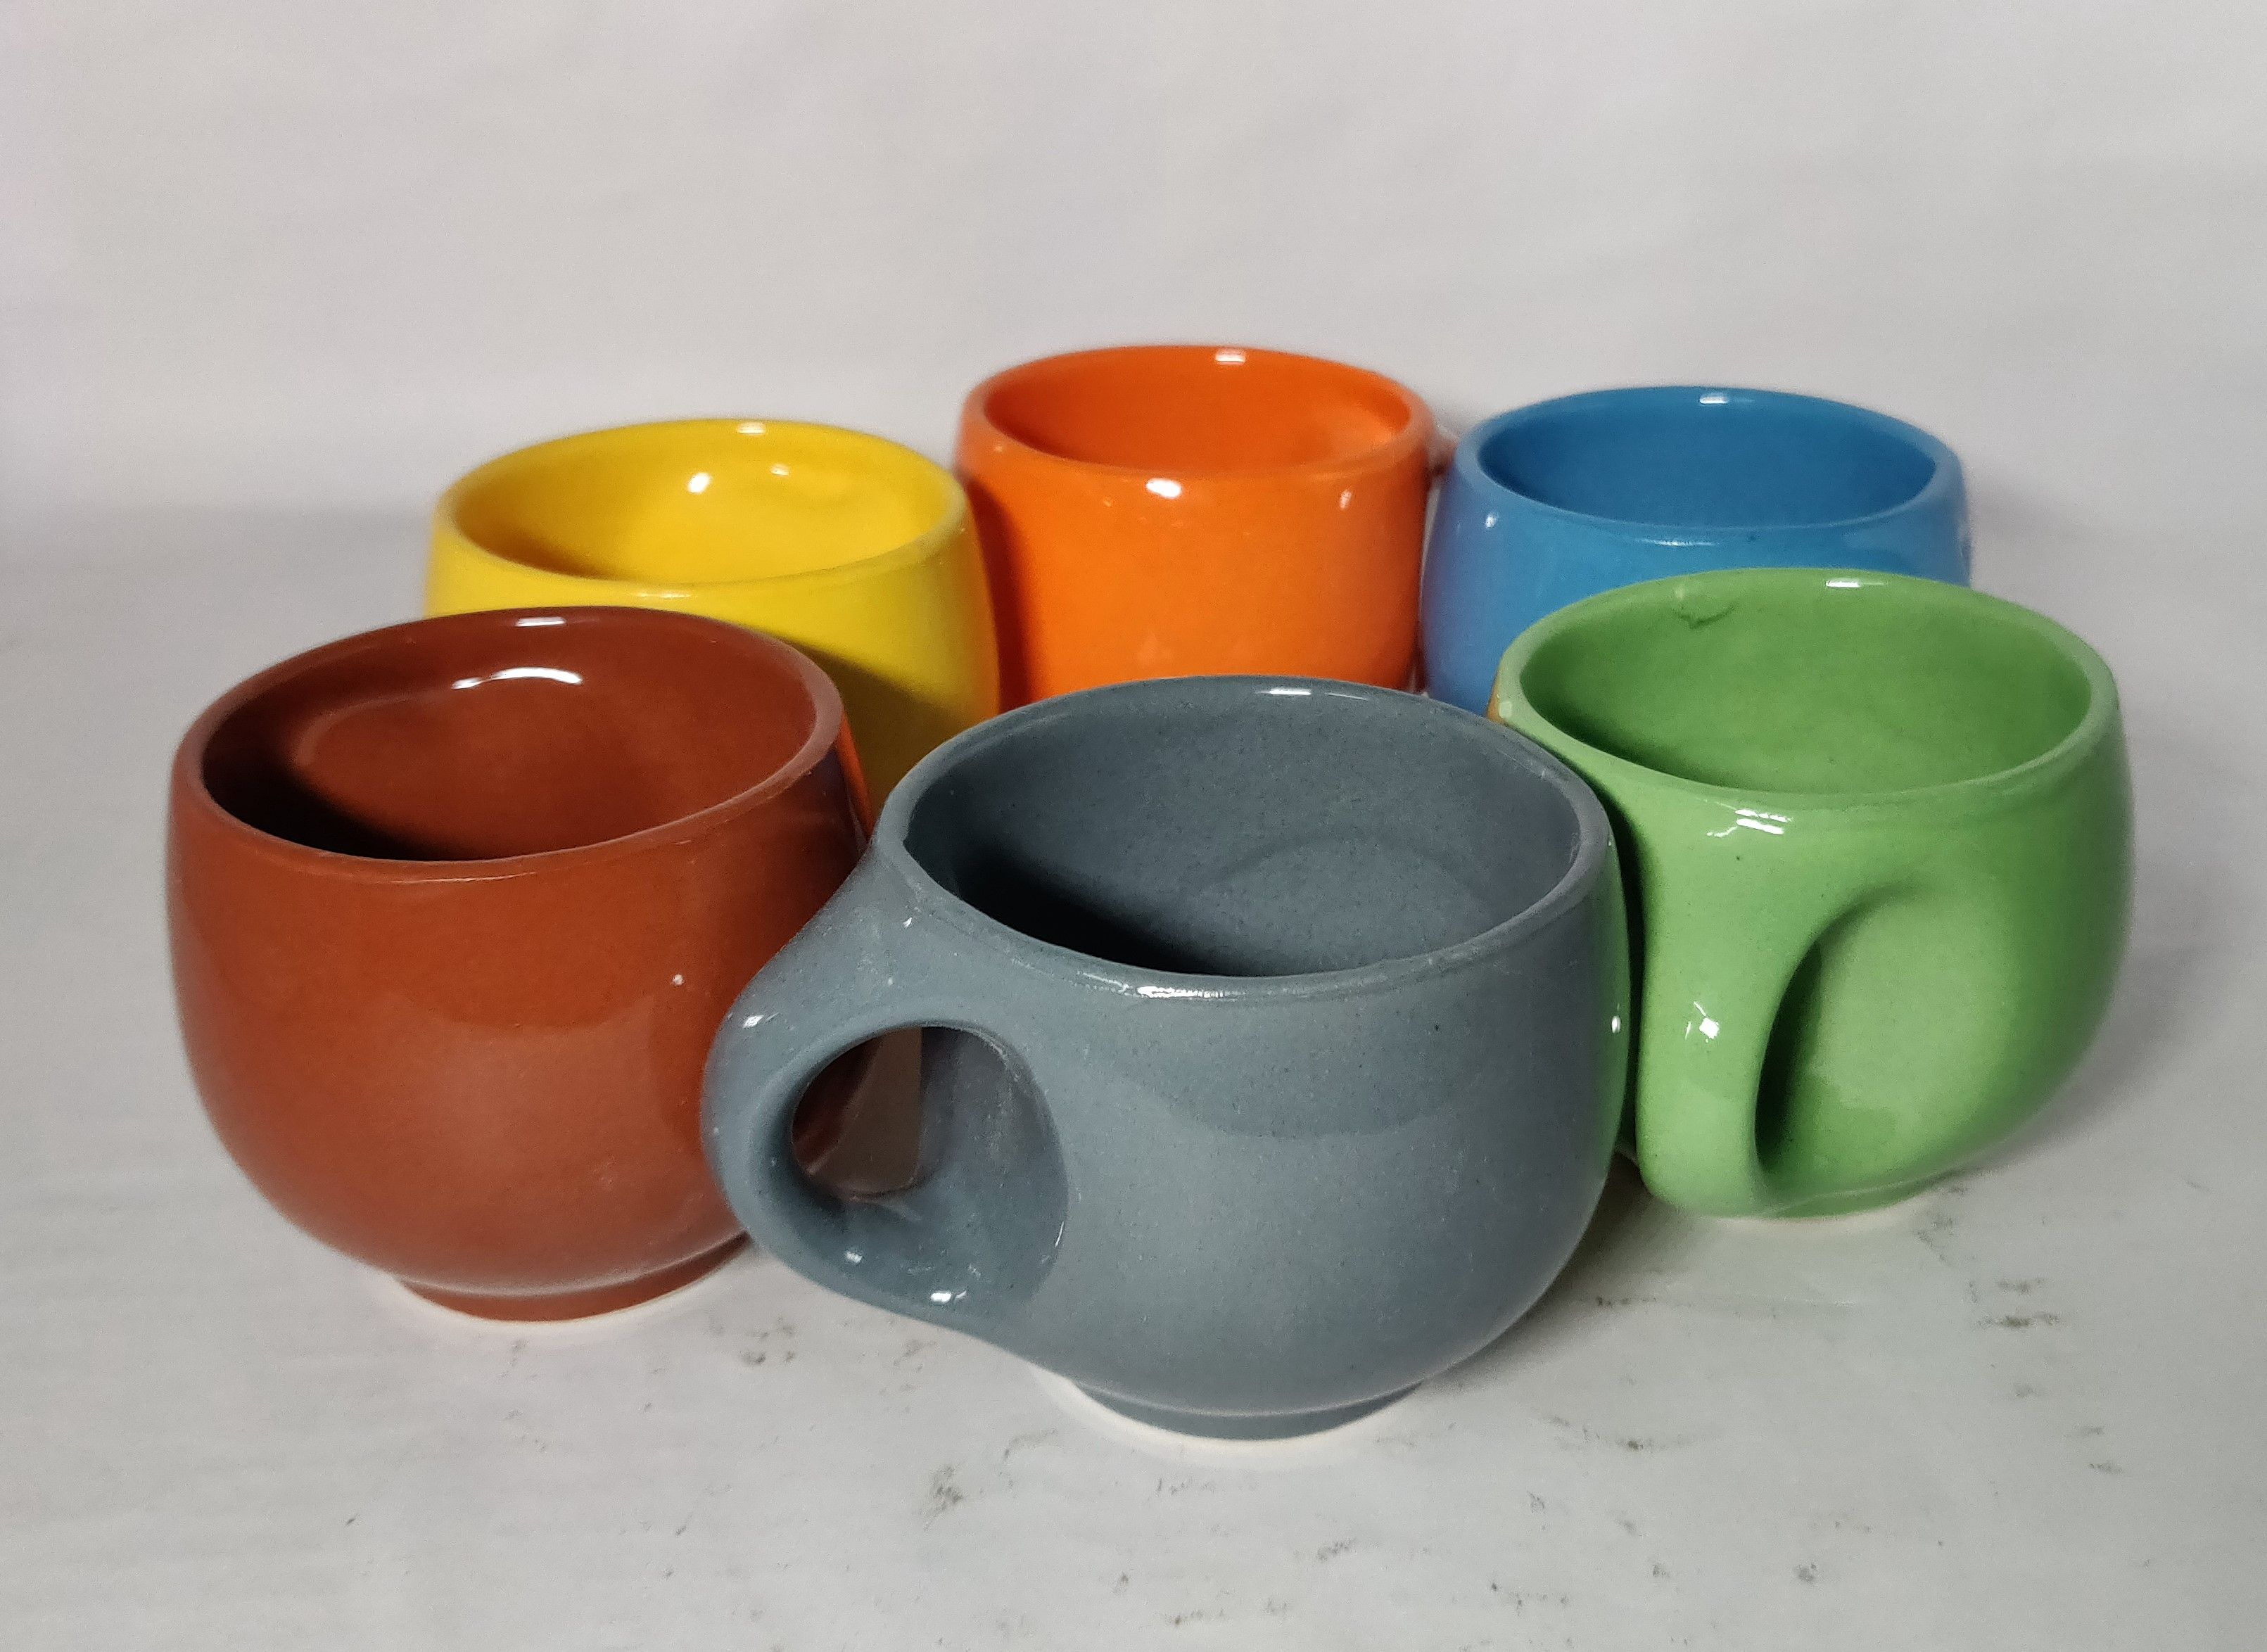 Very Attractive Ceramic Tea Cups Pack Of 6 Hand Made By Artisans Of India Ceramic Tea Cup Tea Cups Fun Cup